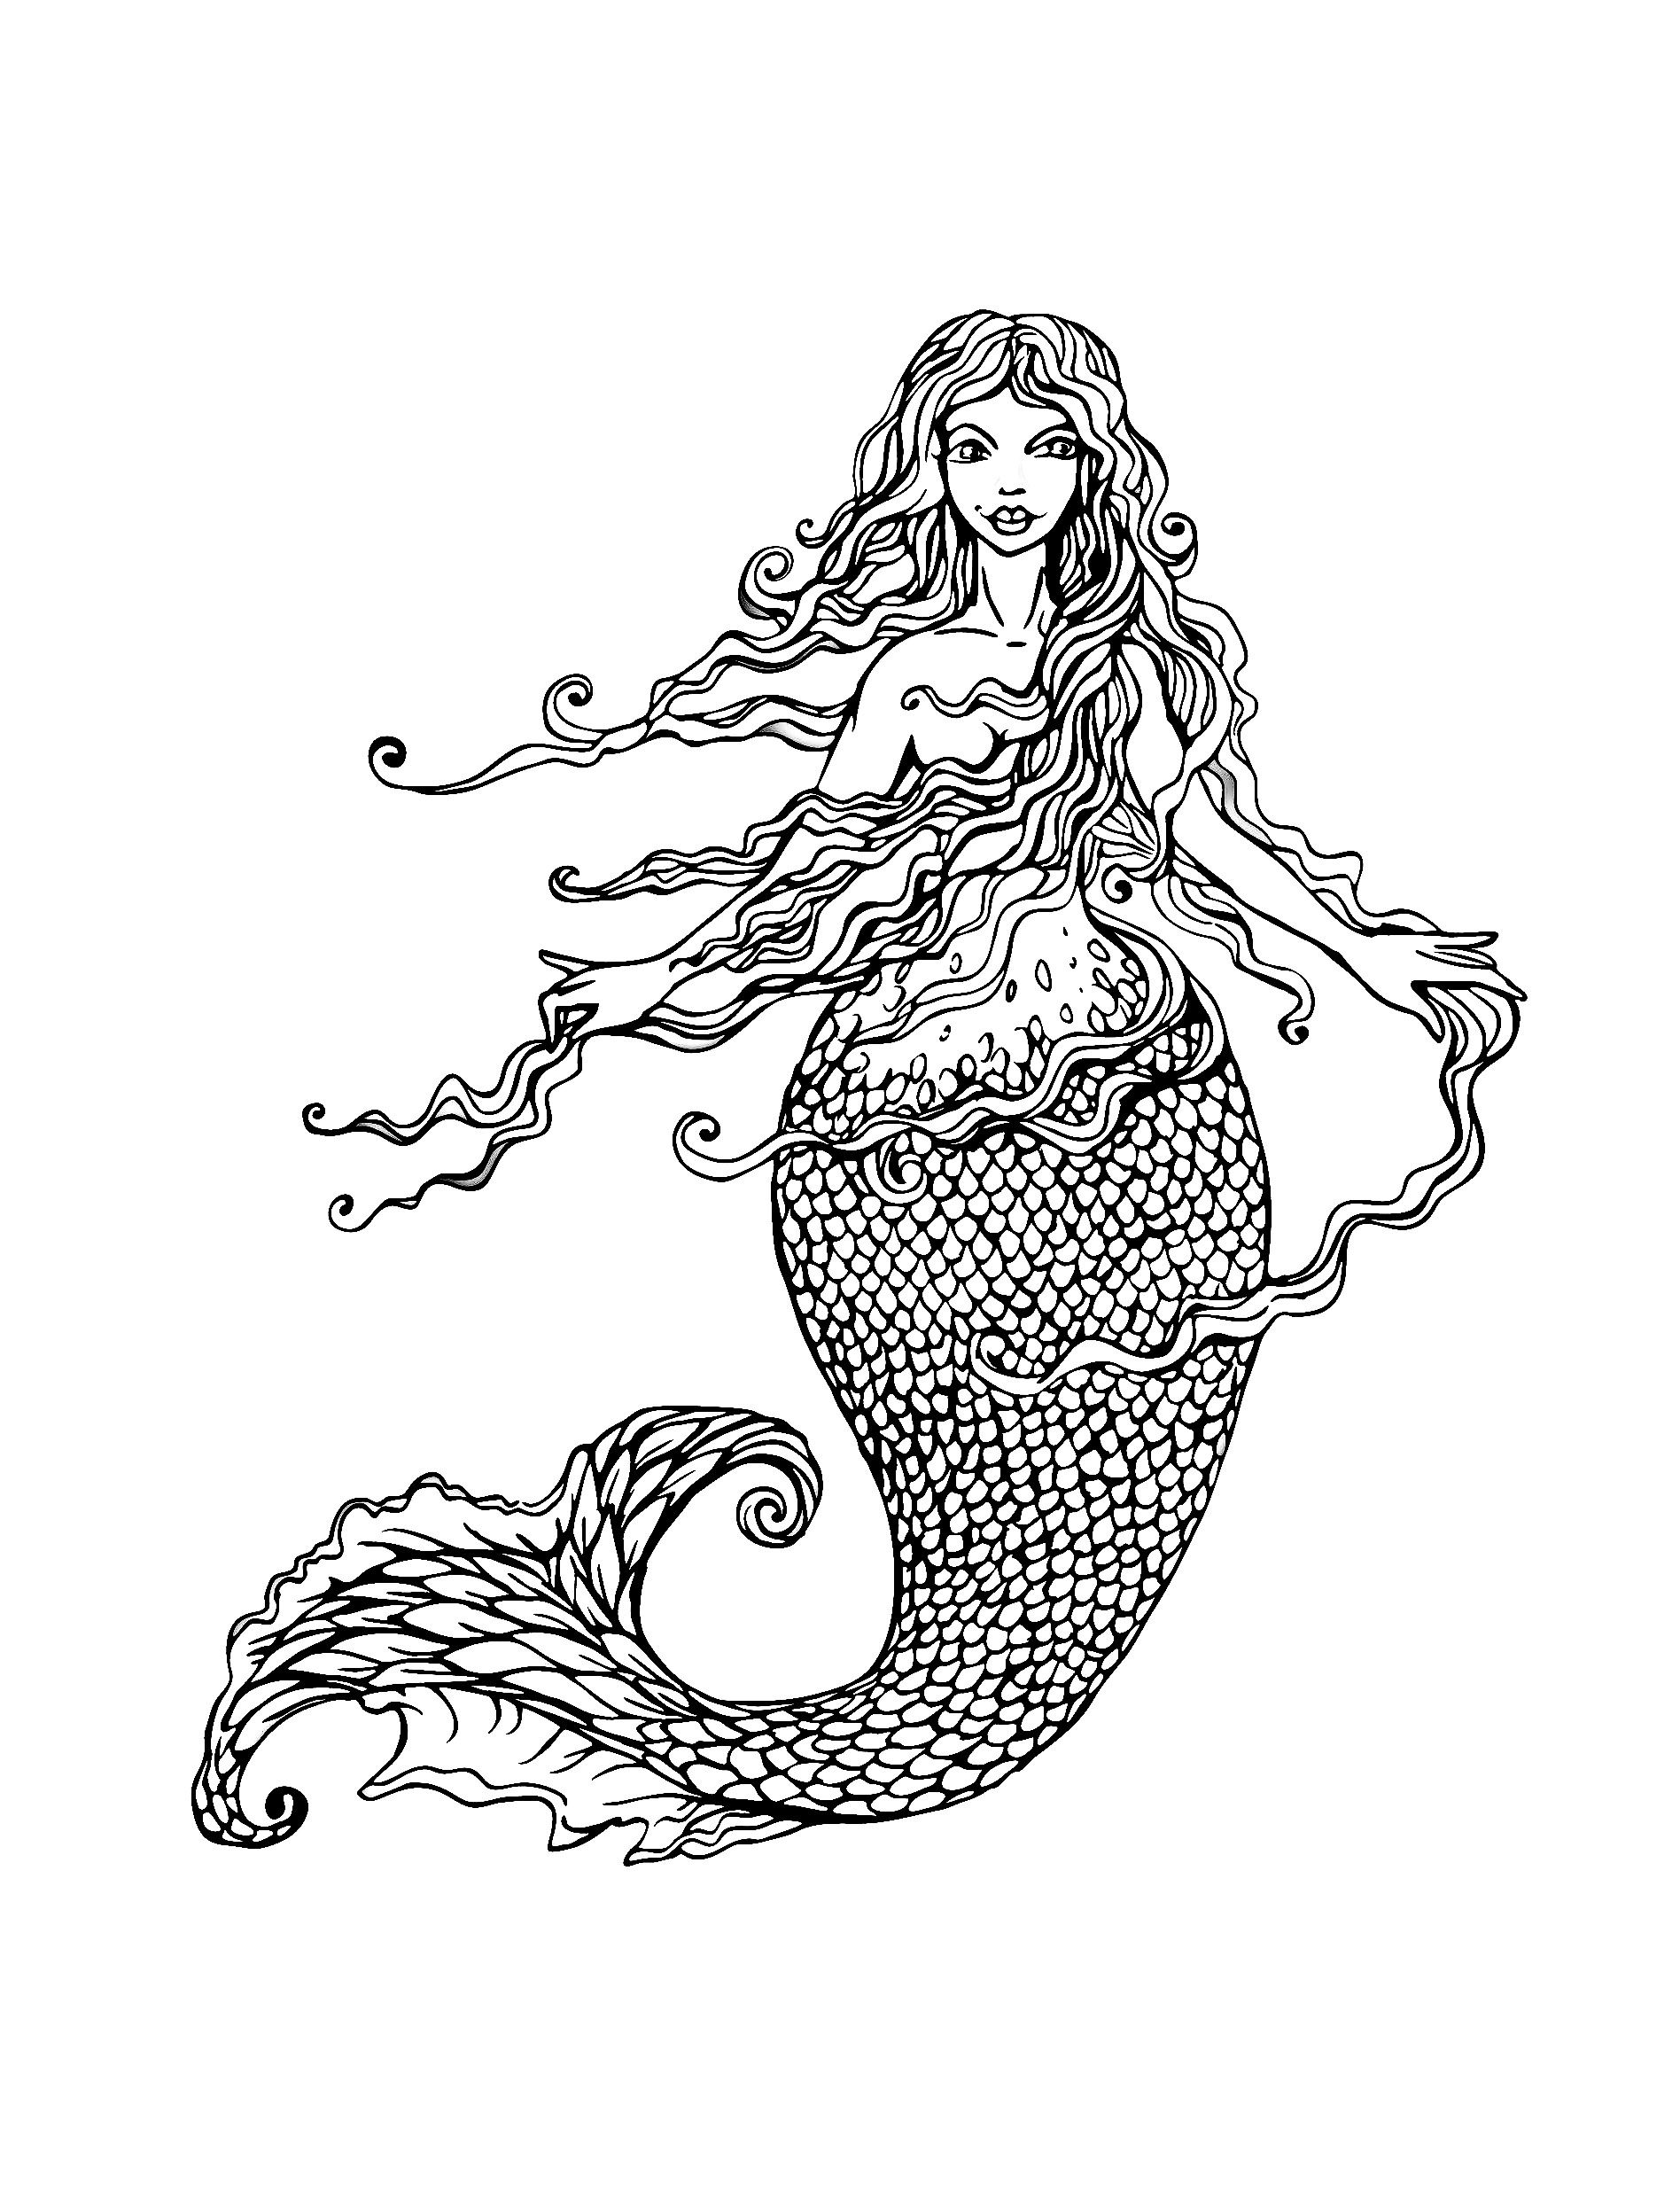 Printable Hair Coloring Pages. adult mermaid with long hair by coloring pages printable and book  to print for free Find more online kids adults of Free page